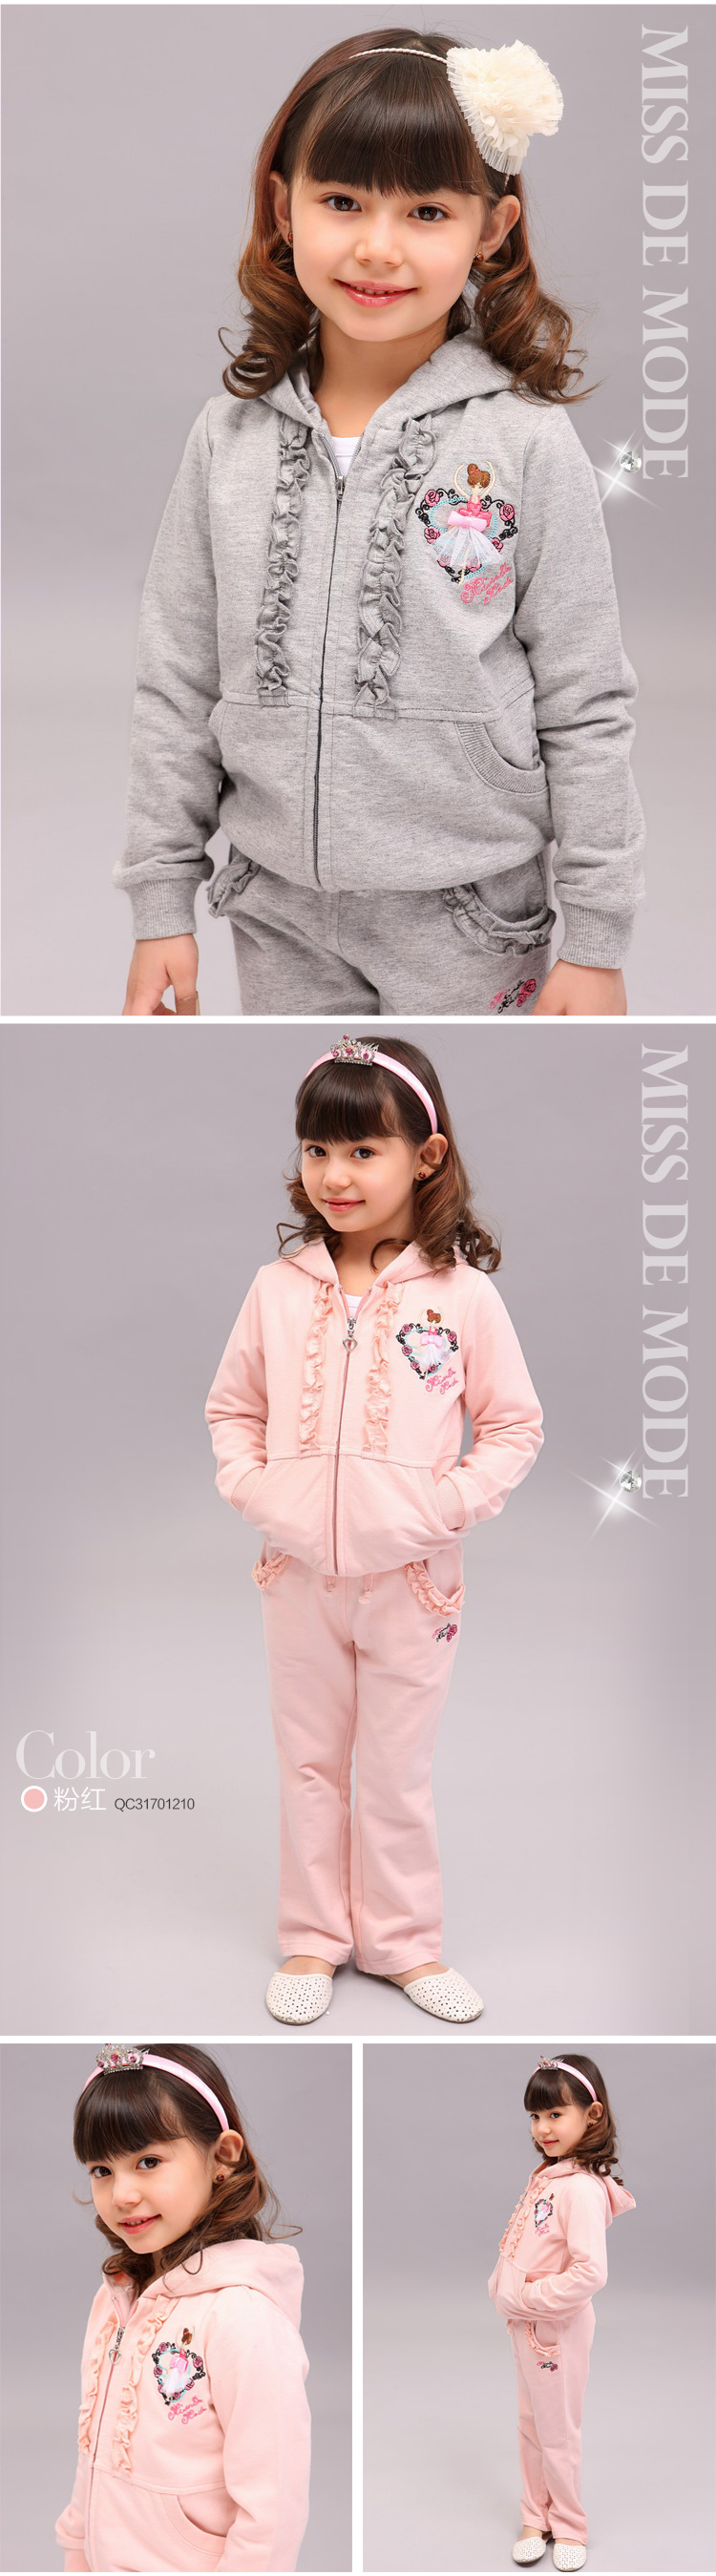 Fashion Style Miss modern baby clothes girls fashion Joker zipper hooded suits children 2013 spring new